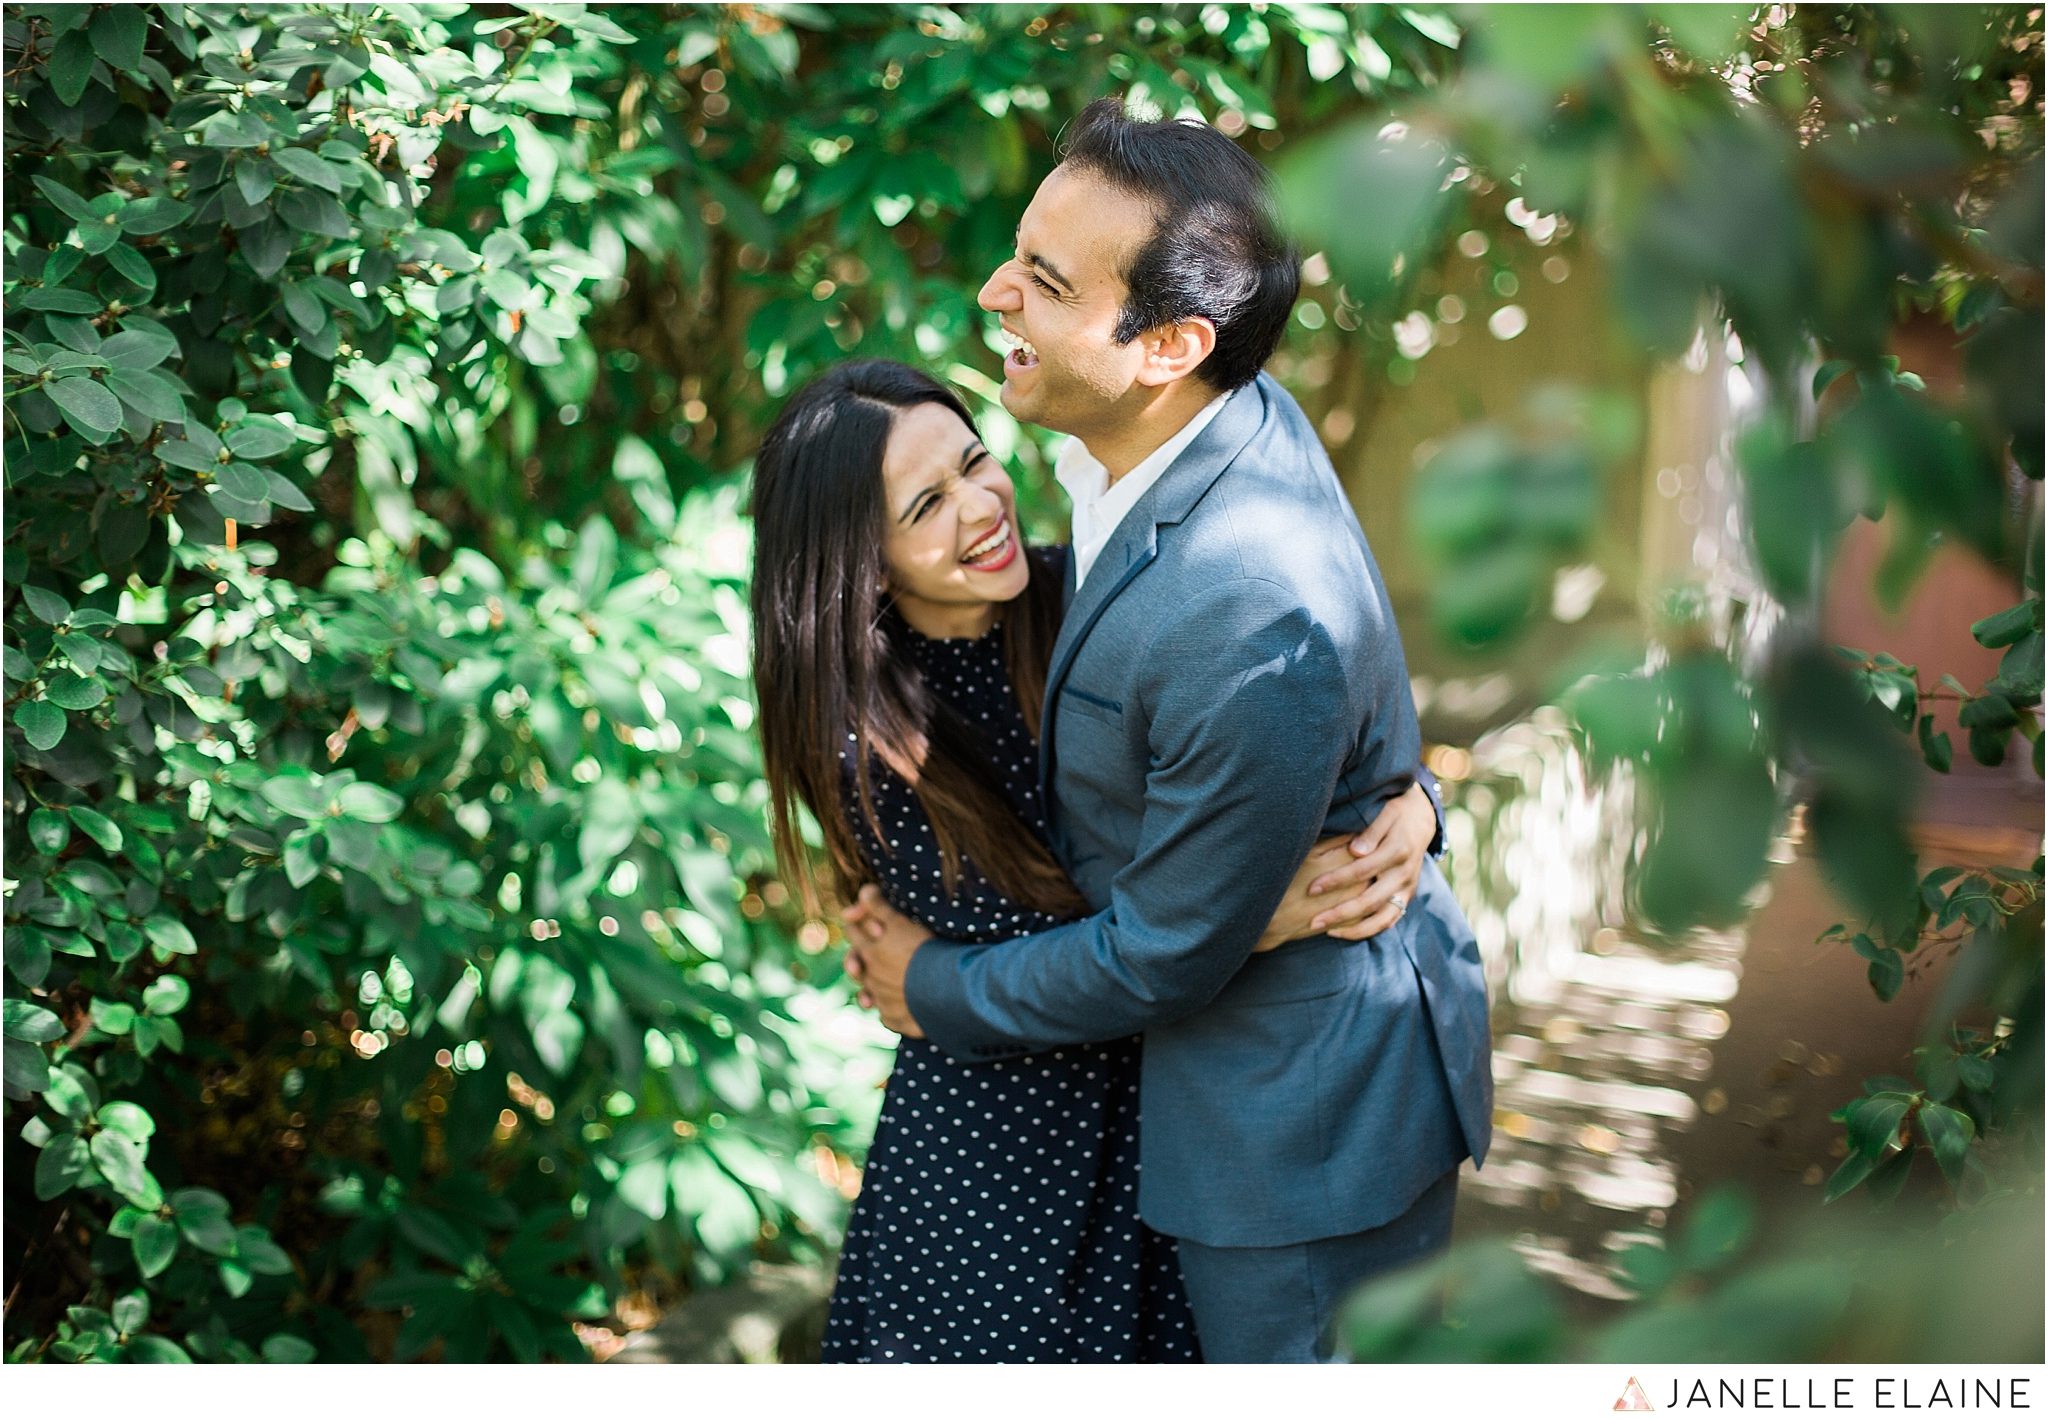 janelle elaine photography-zain and umema-seattle-uw-red square-engagement-photographer-56.jpg